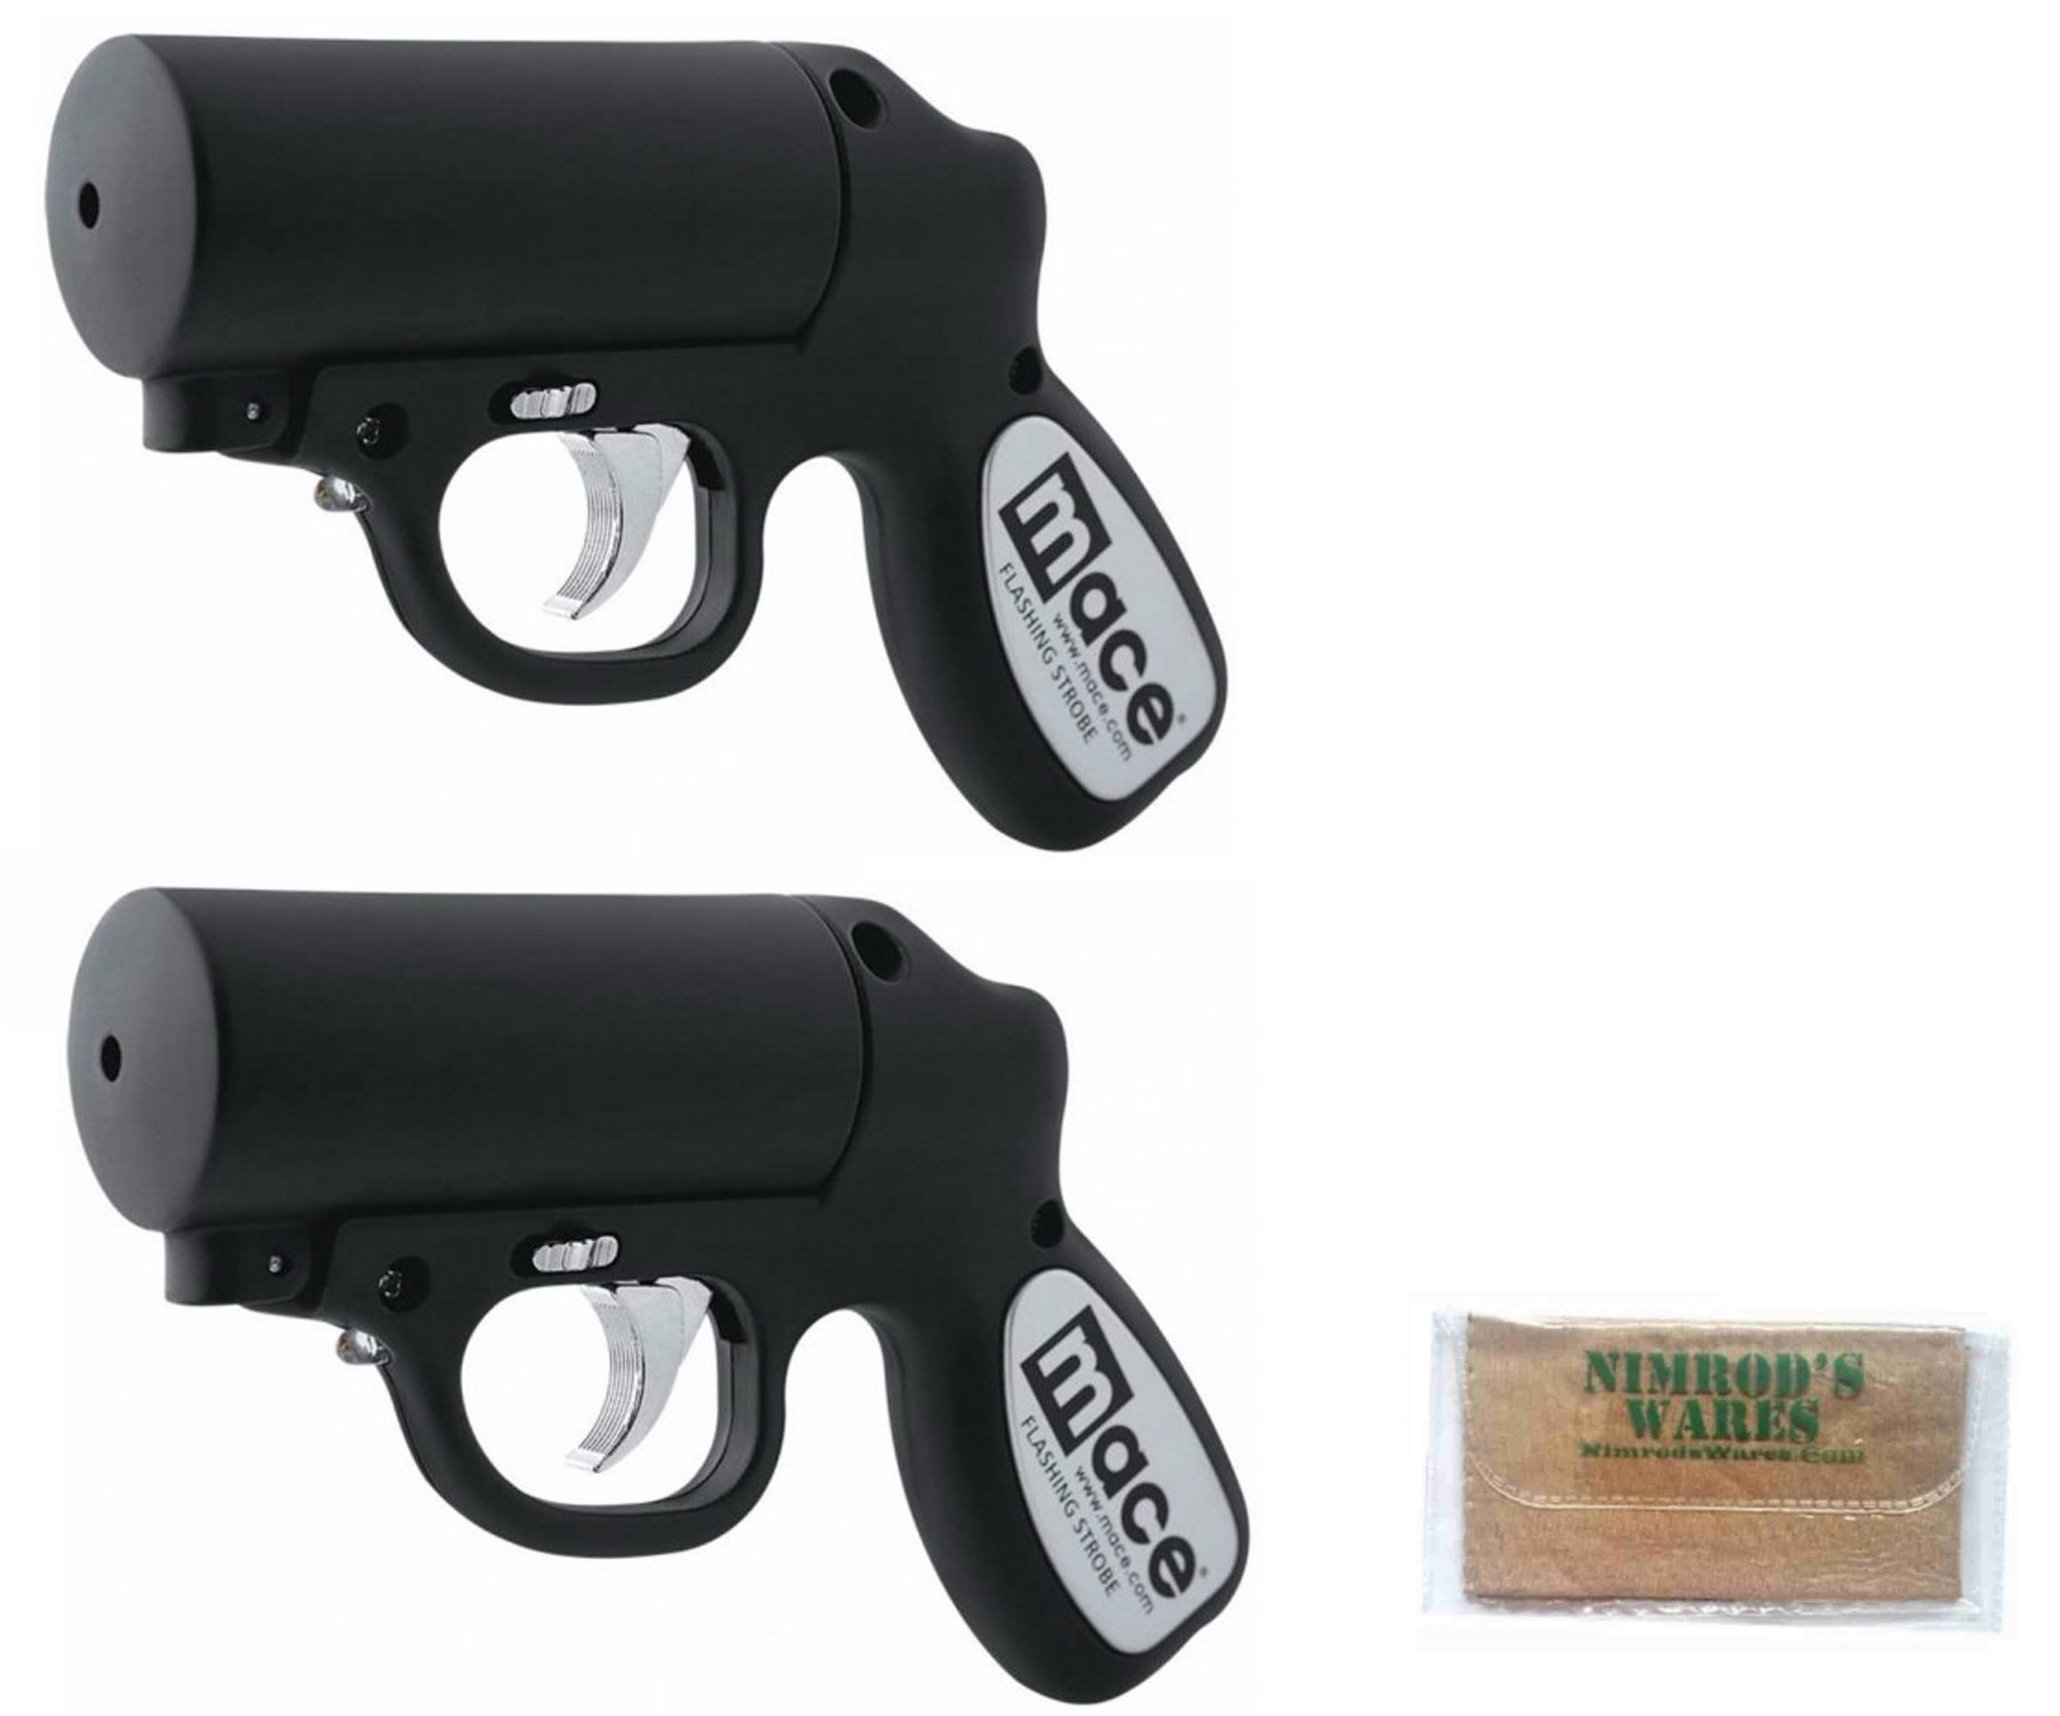 Nimrod's Wares 2-Pack MACE Pepper Gun 20ft. Range Defense Spray Strobe LED Microfiber Cloth